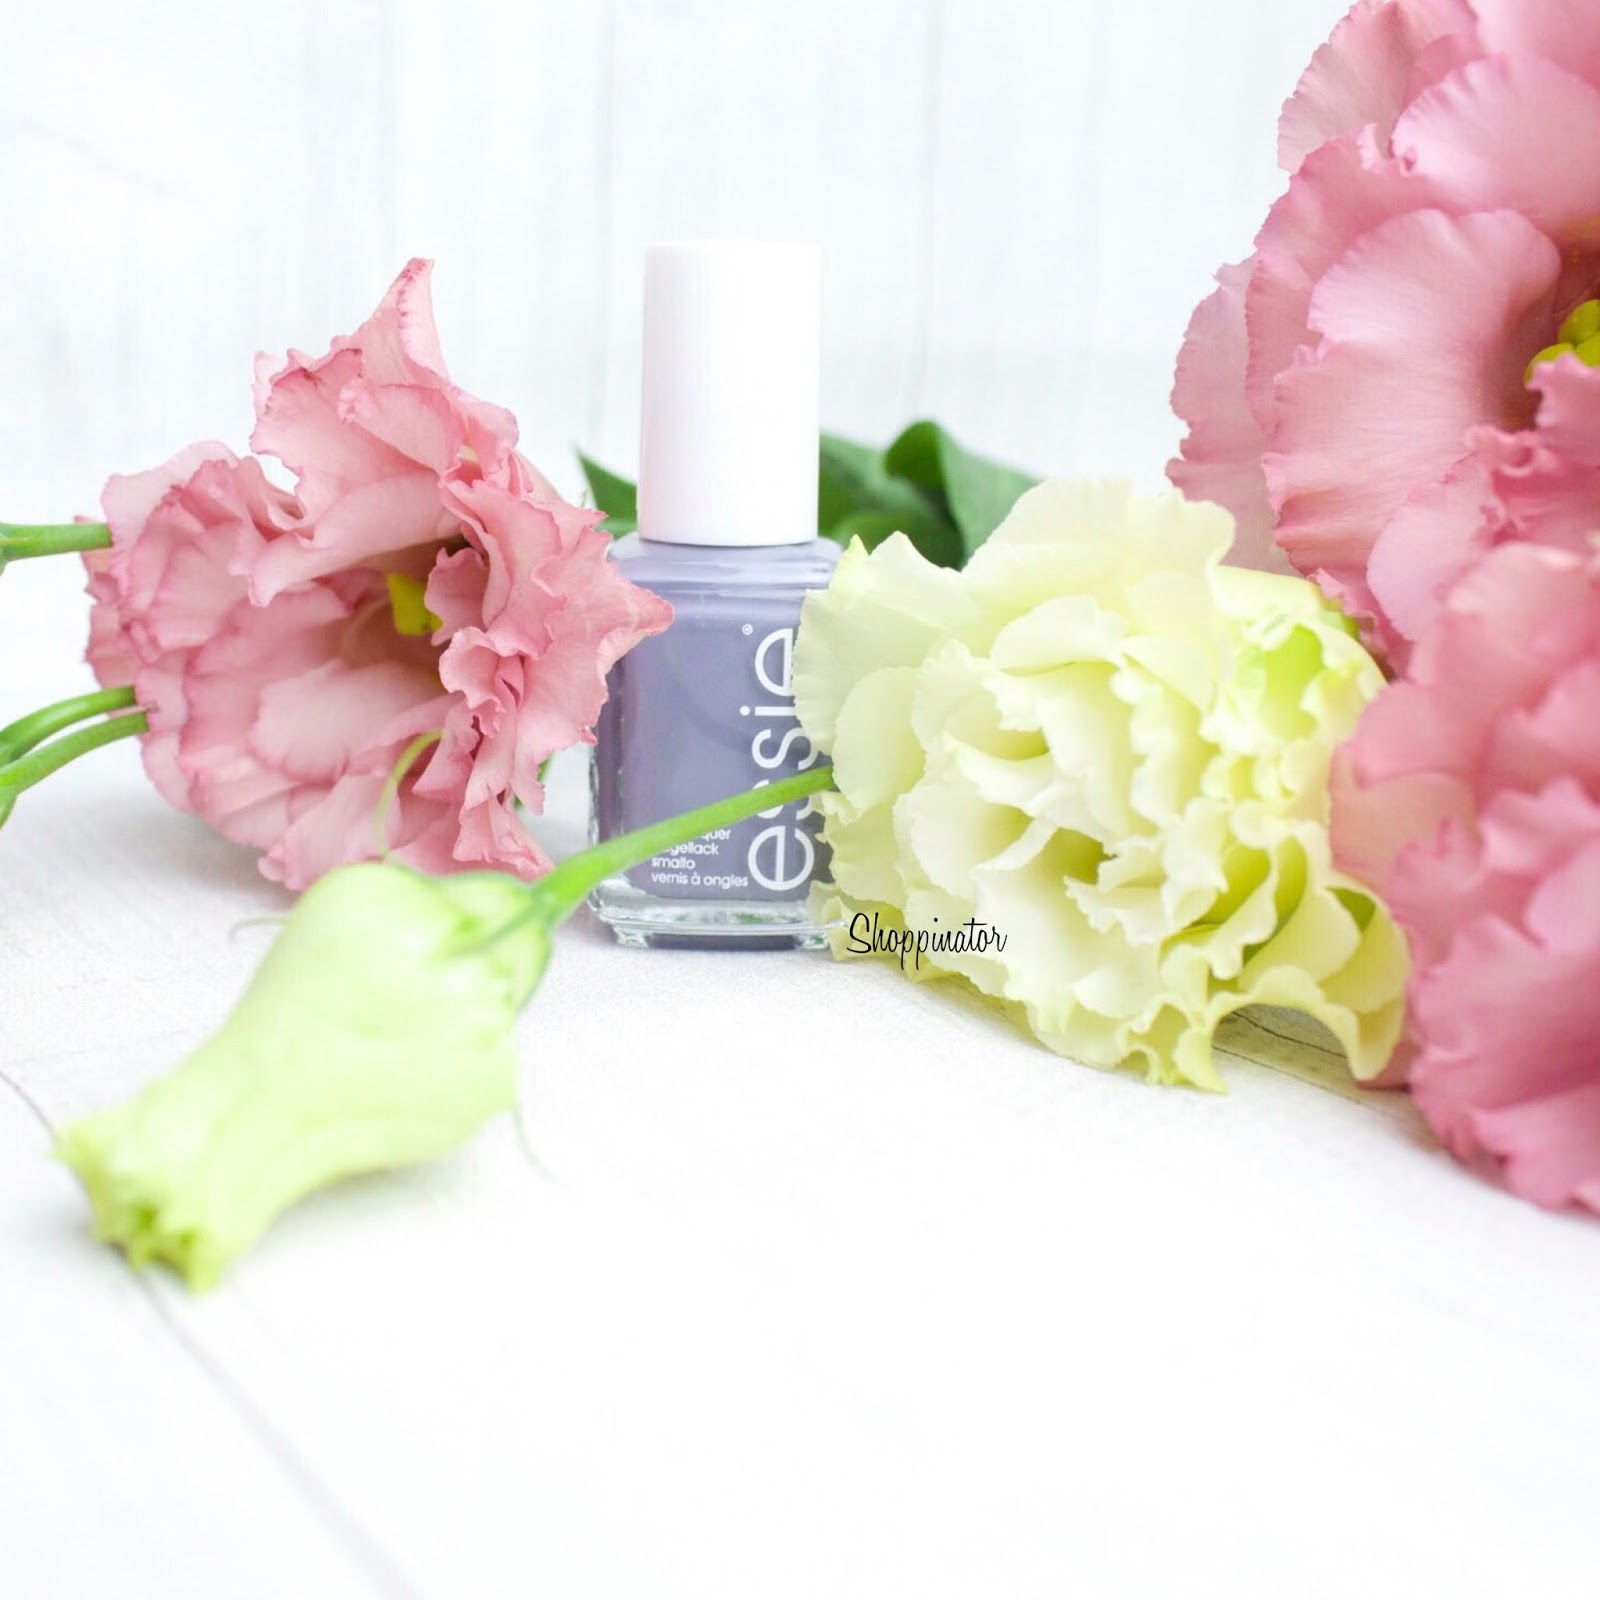 essie-spring-le-frühling-swatches-swatch-review-flowerista-lila-flowers-nagellack-nailpolish-limitiert-notd-nailoftheday-shoppinator-pedal-pushers